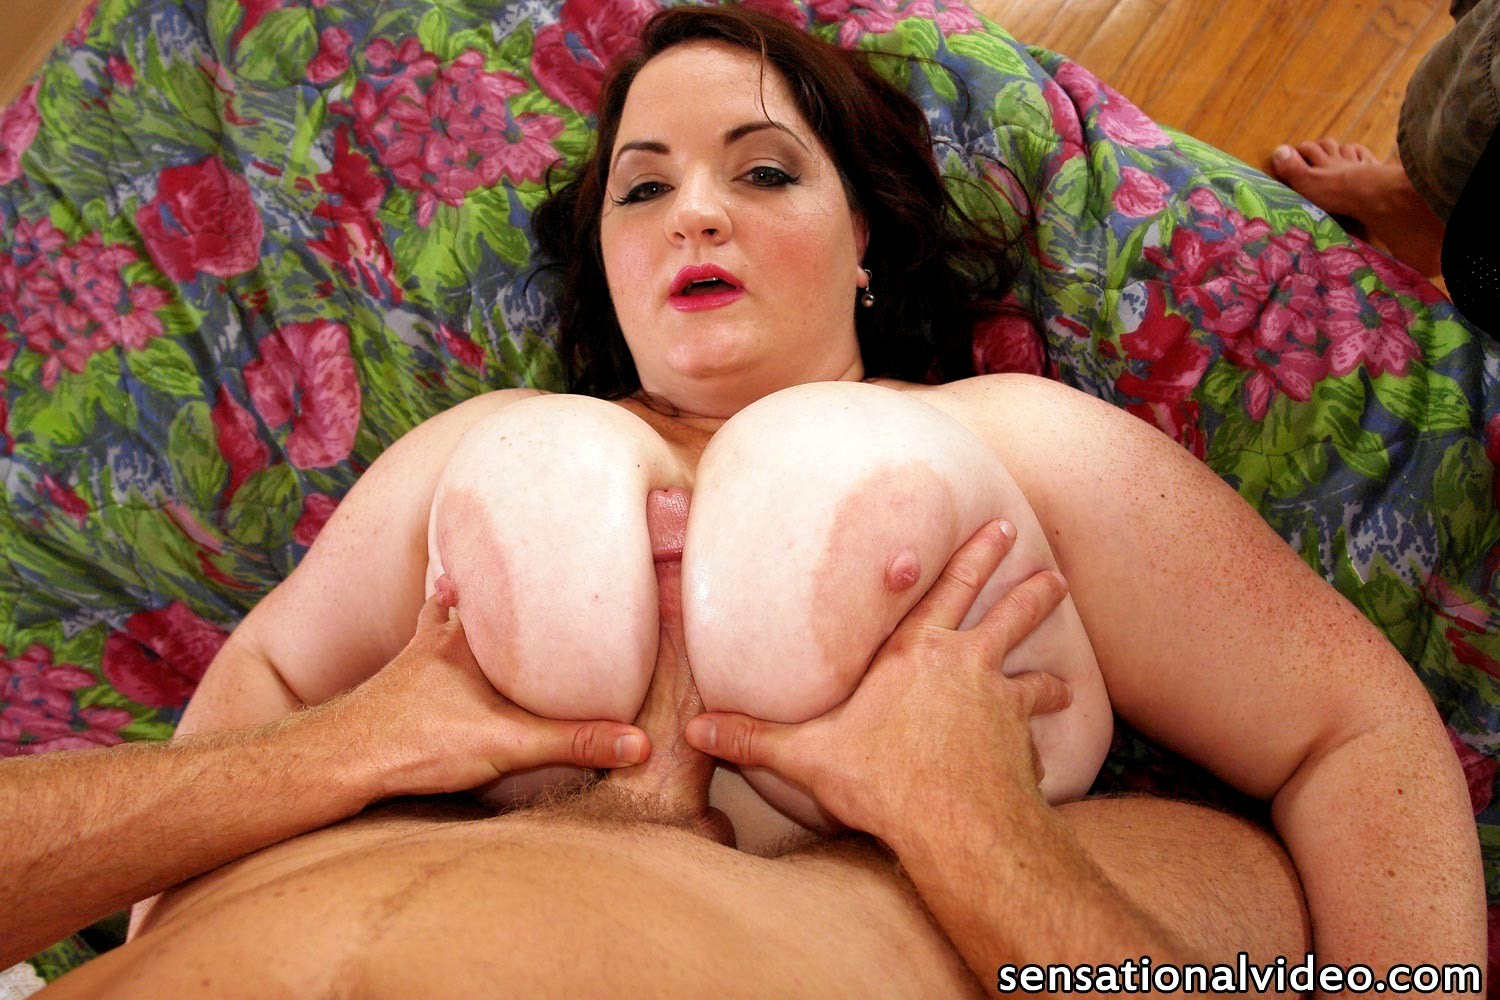 Fat girls breast fuck pictures, patrice nude